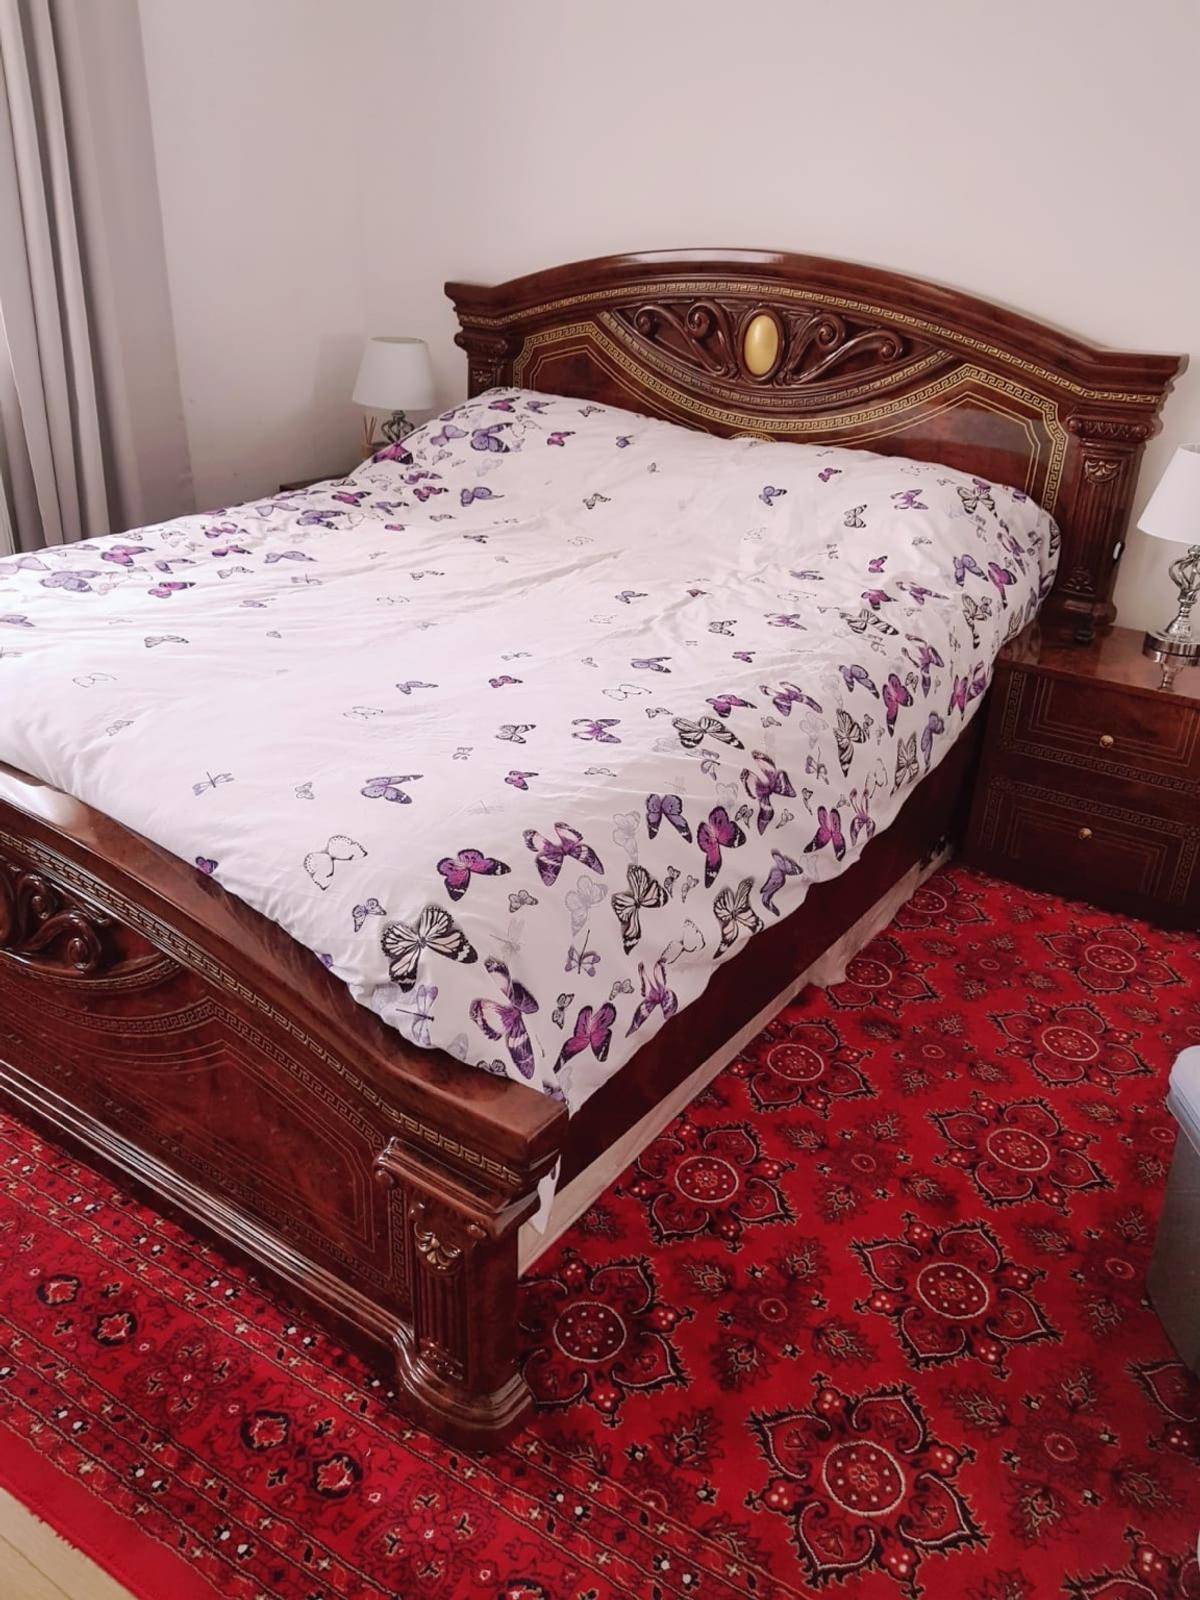 Italian Bedroom Furniture Set In Ub8 Hillingdon For 1 500 00 For Sale Shpock